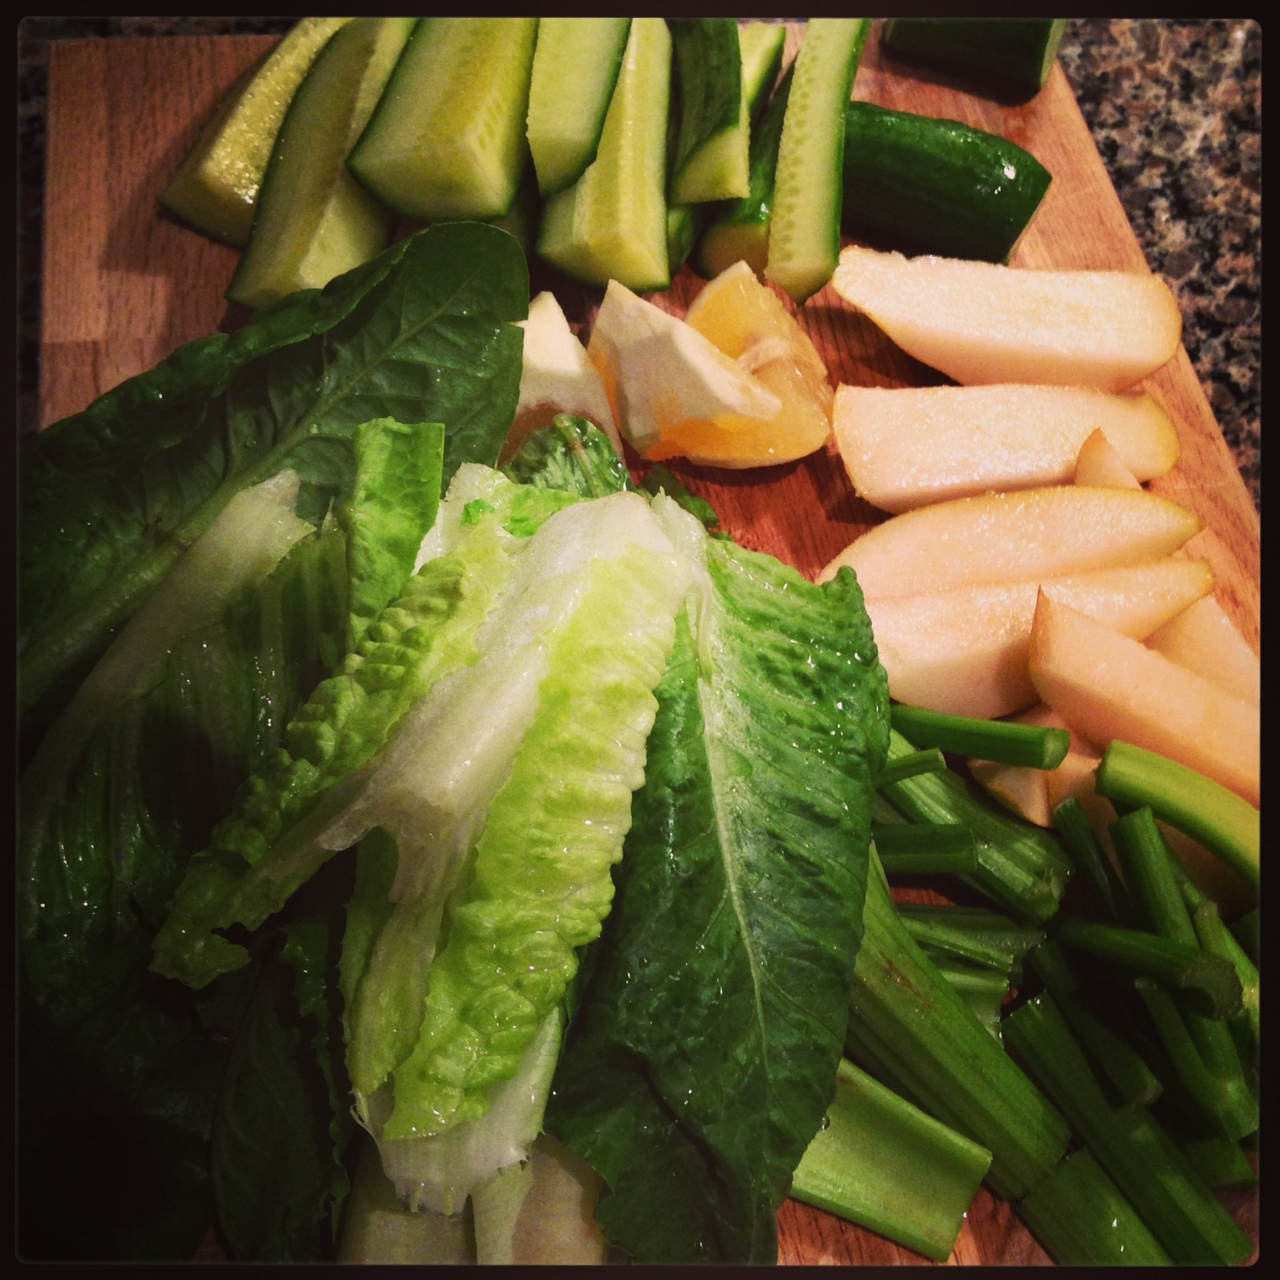 Evening green juice on Tuesday: cucumber, celery, romaine, lemon and pear.